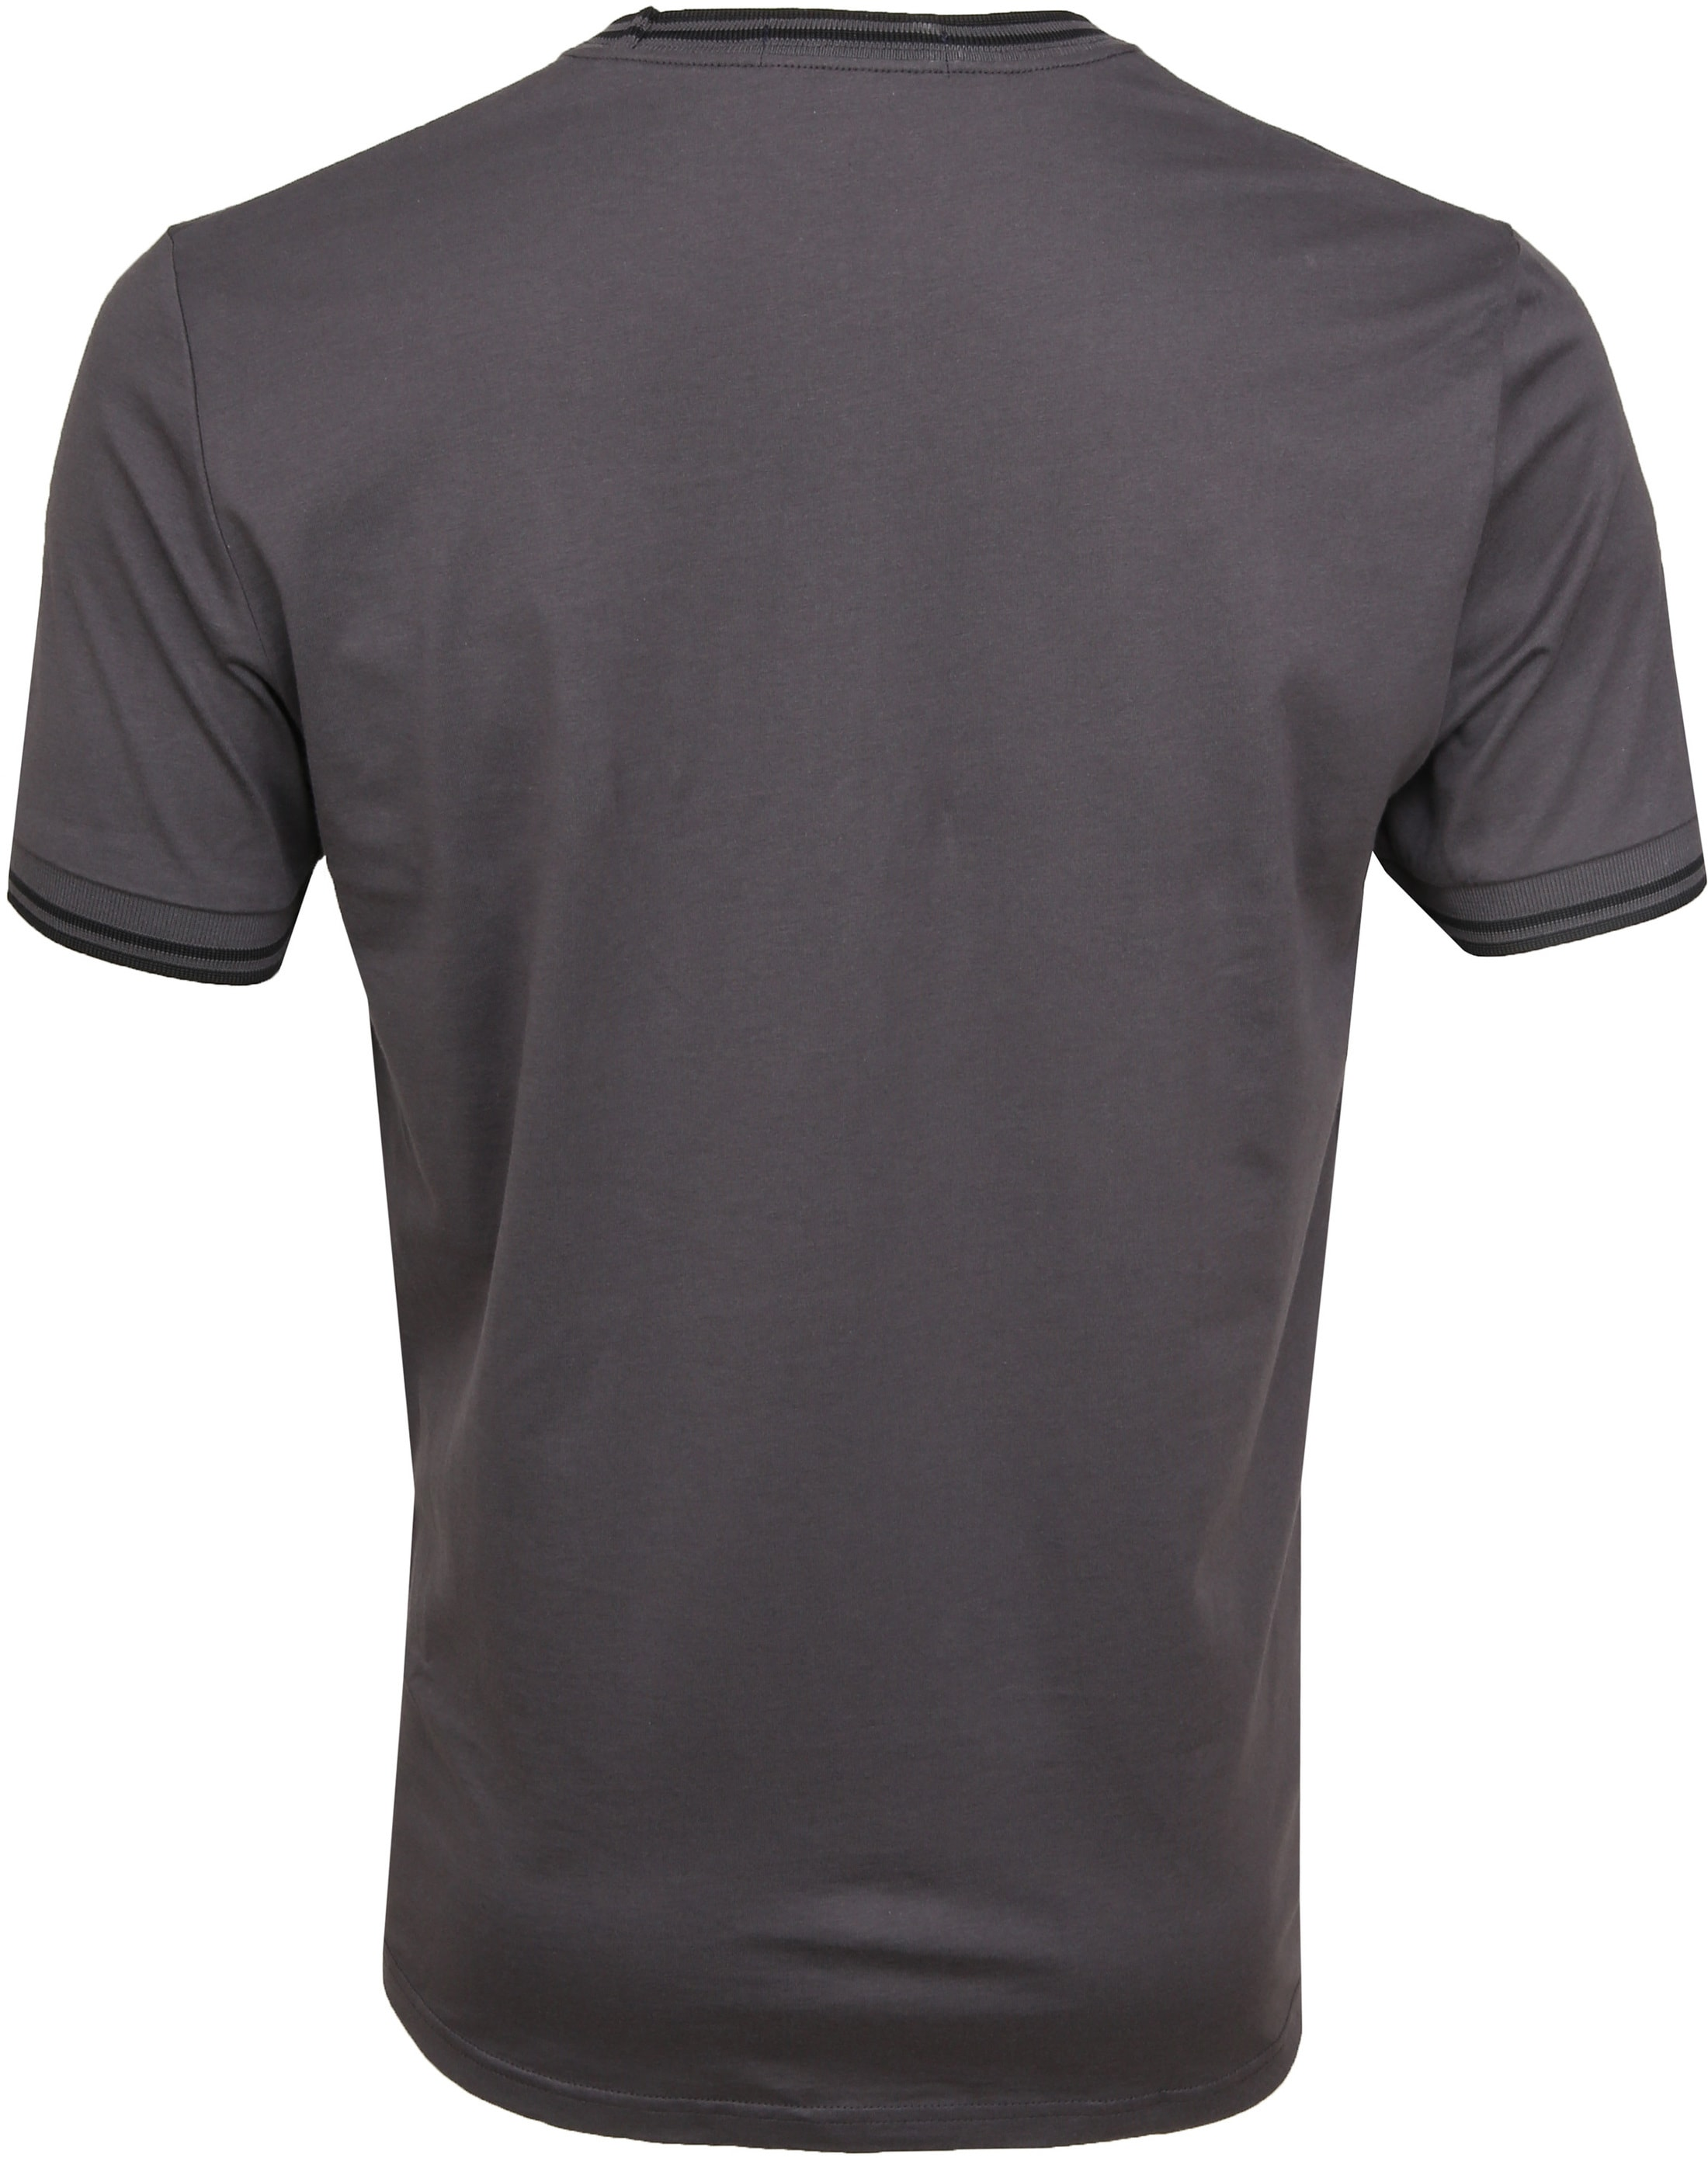 Fred Perry Twin Tipped T-shirt Grau foto 3